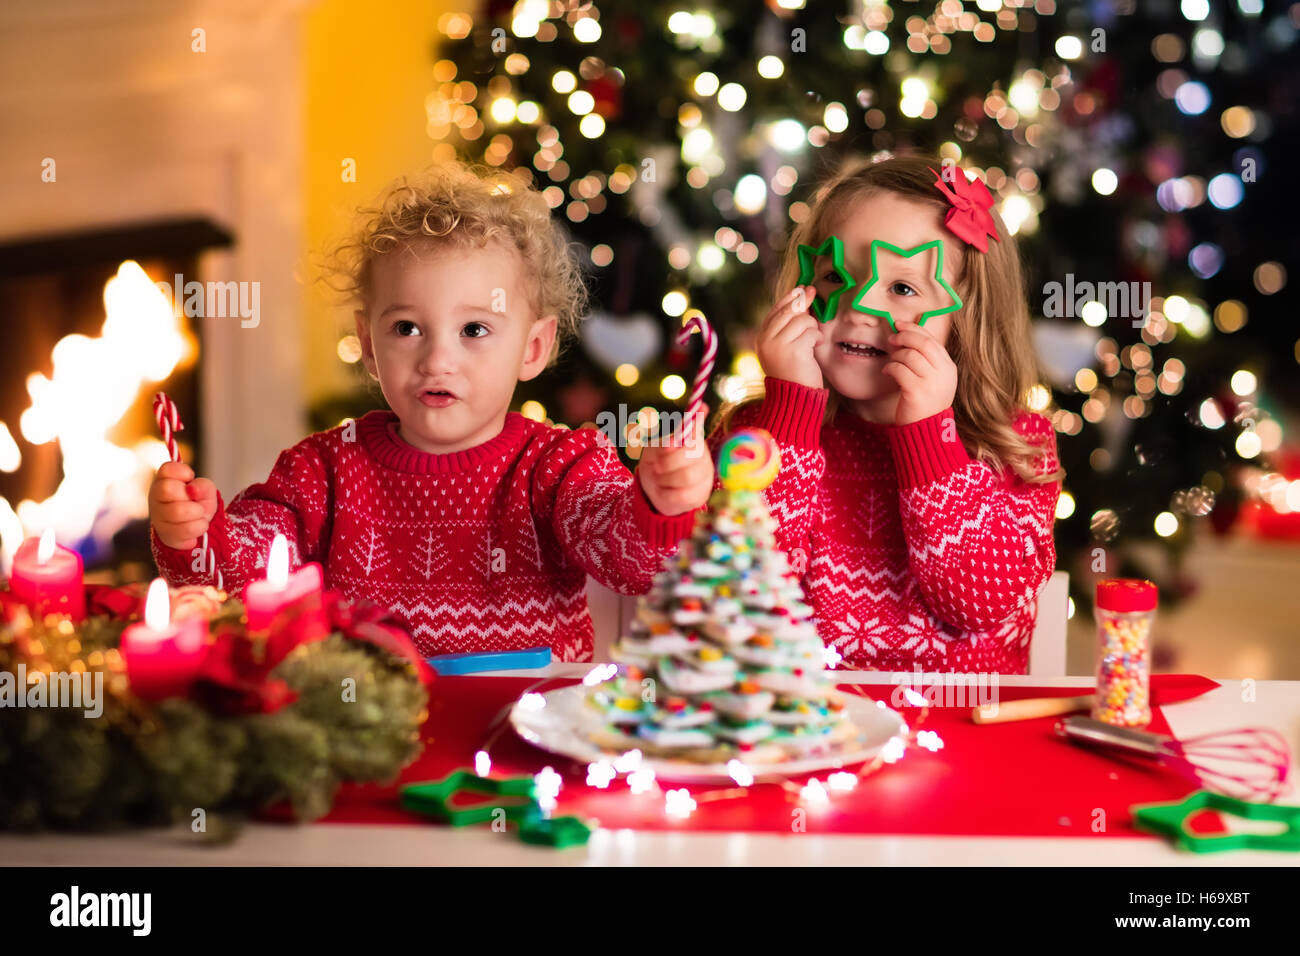 Little Boy And Girl Making Christmas Gingerbread House At